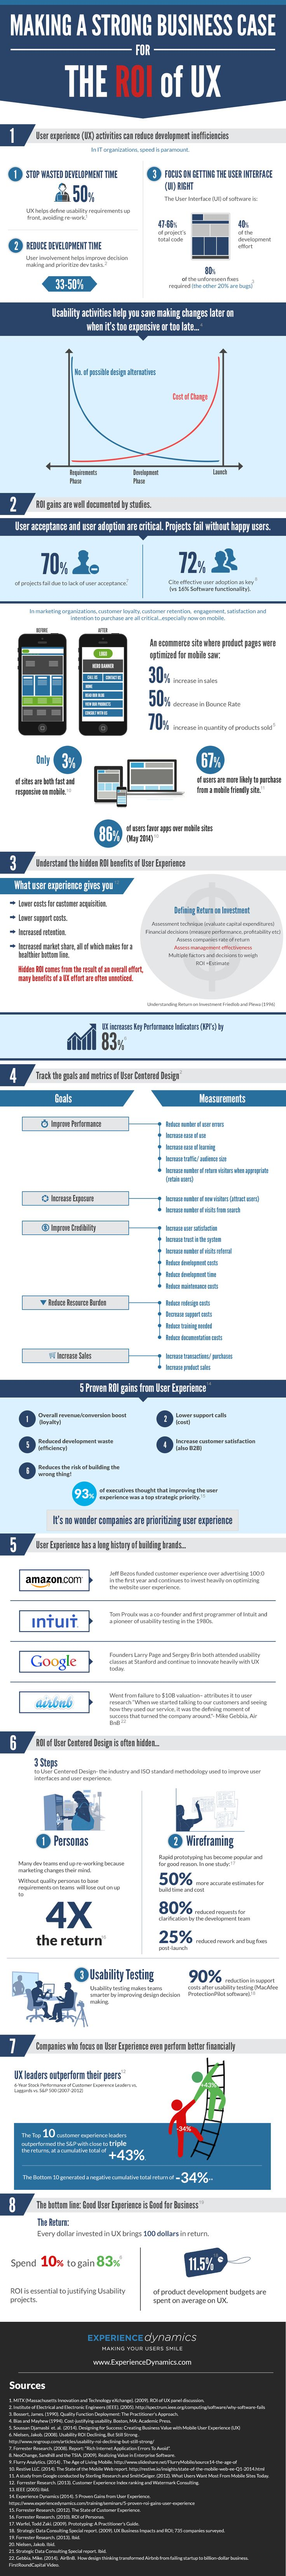 Making a Strong Business case for the ROI of UX [INFOGRAPHIC] | Experience…